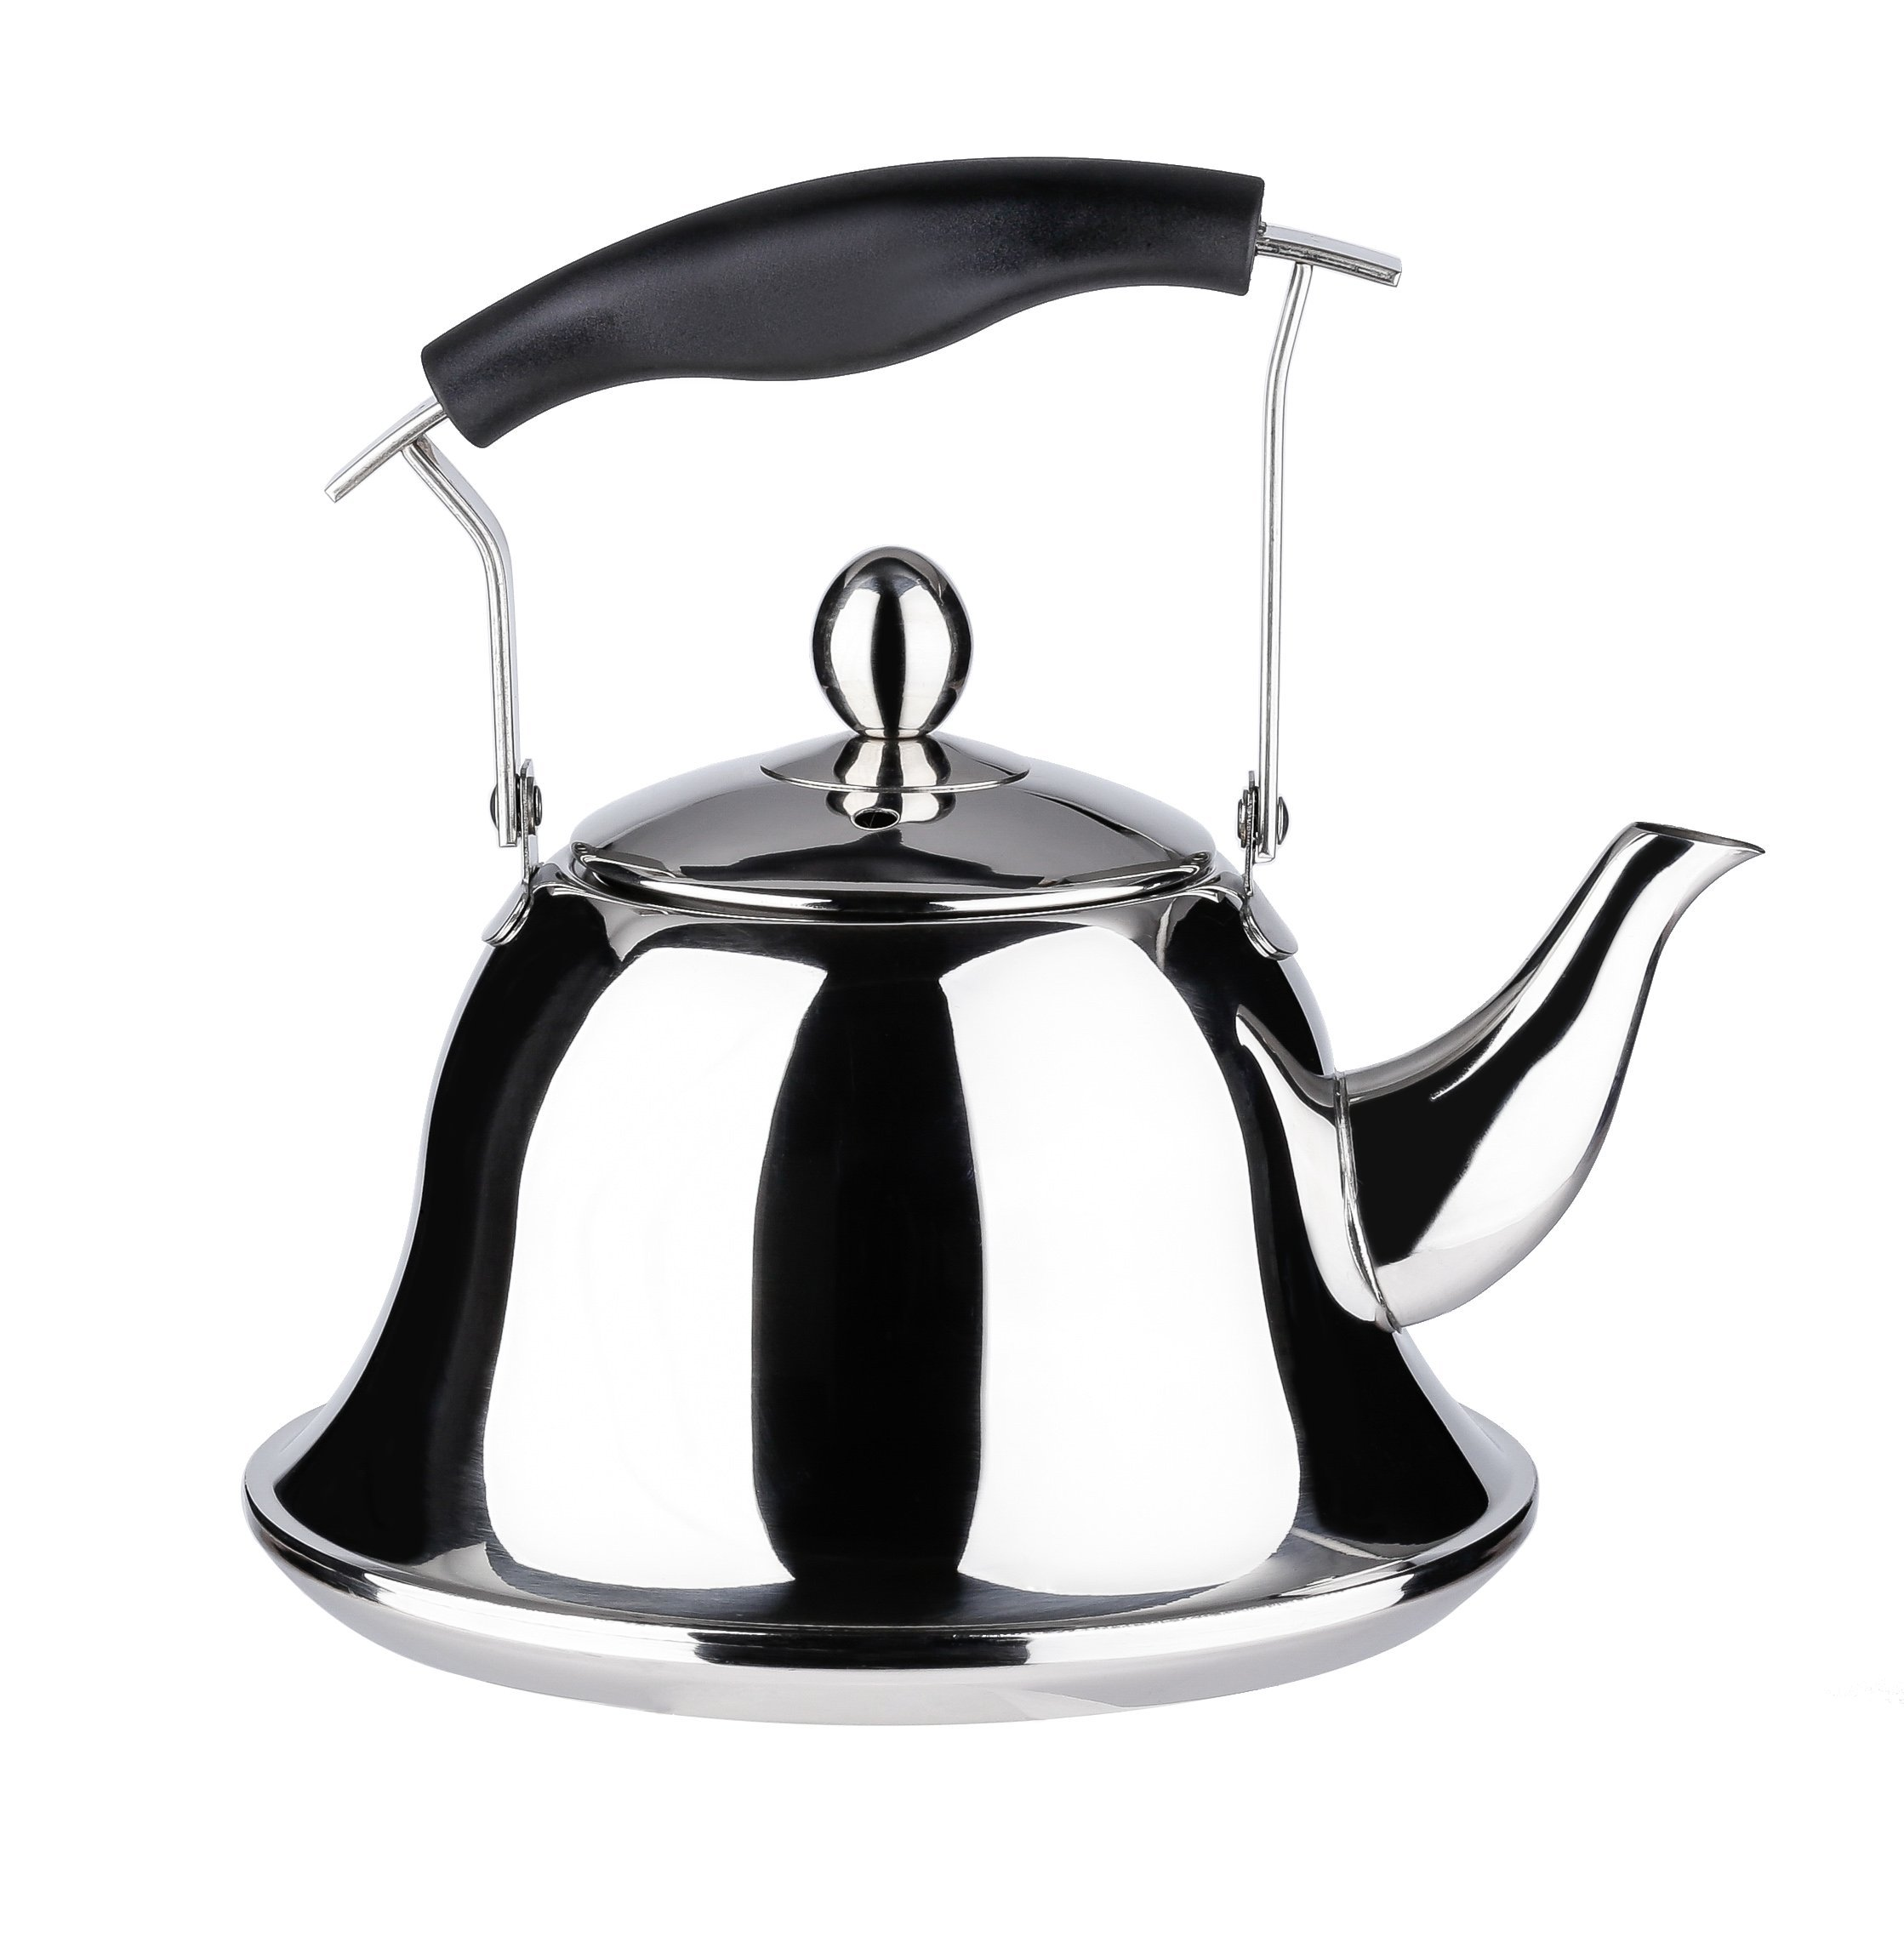 Onlycooker Whistling Tea Kettle Stainless Steel 3 Liter Stovetop Teakettle Sturdy Teapot for Tea Coffee Fast Boiling Water Silver Mirror Finish 3.2 Quart